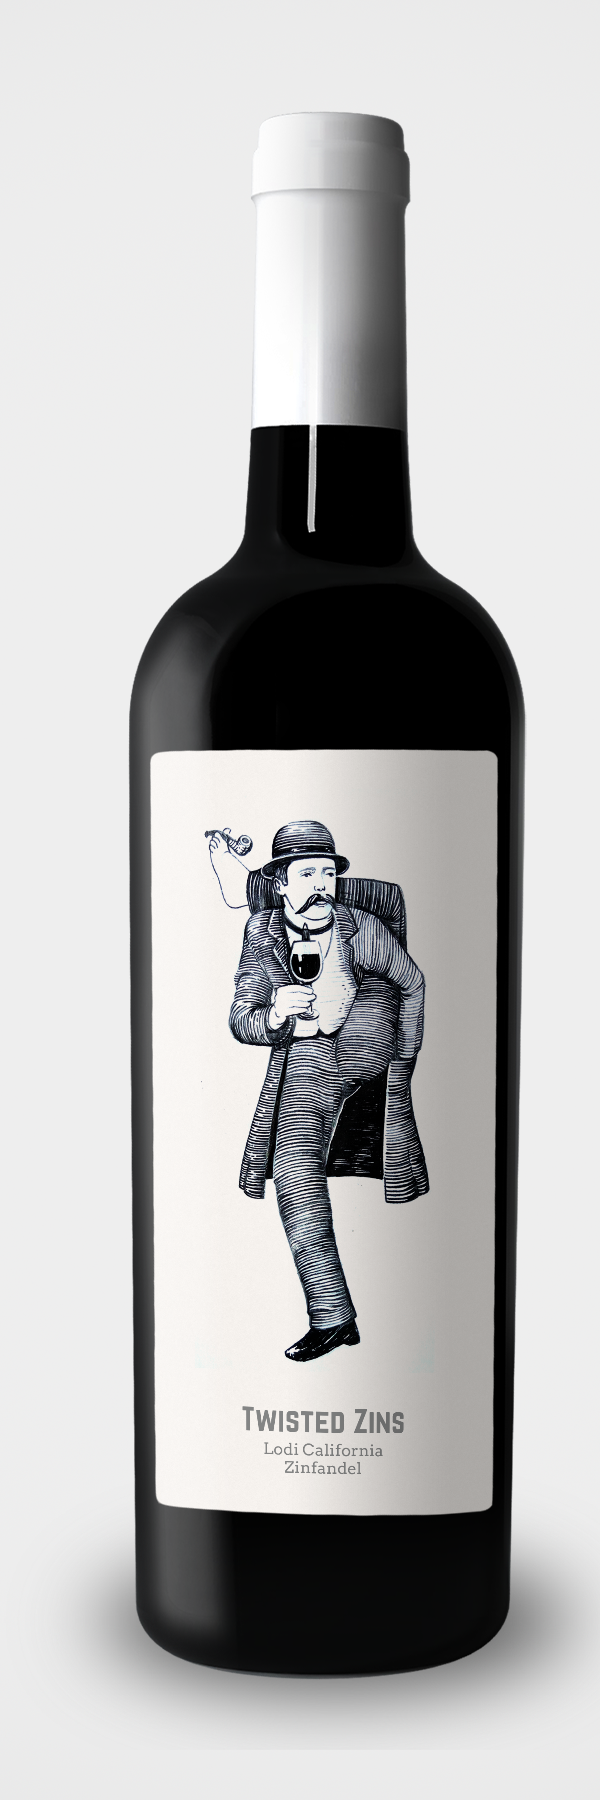 Contemporary wine label featuring old-school character